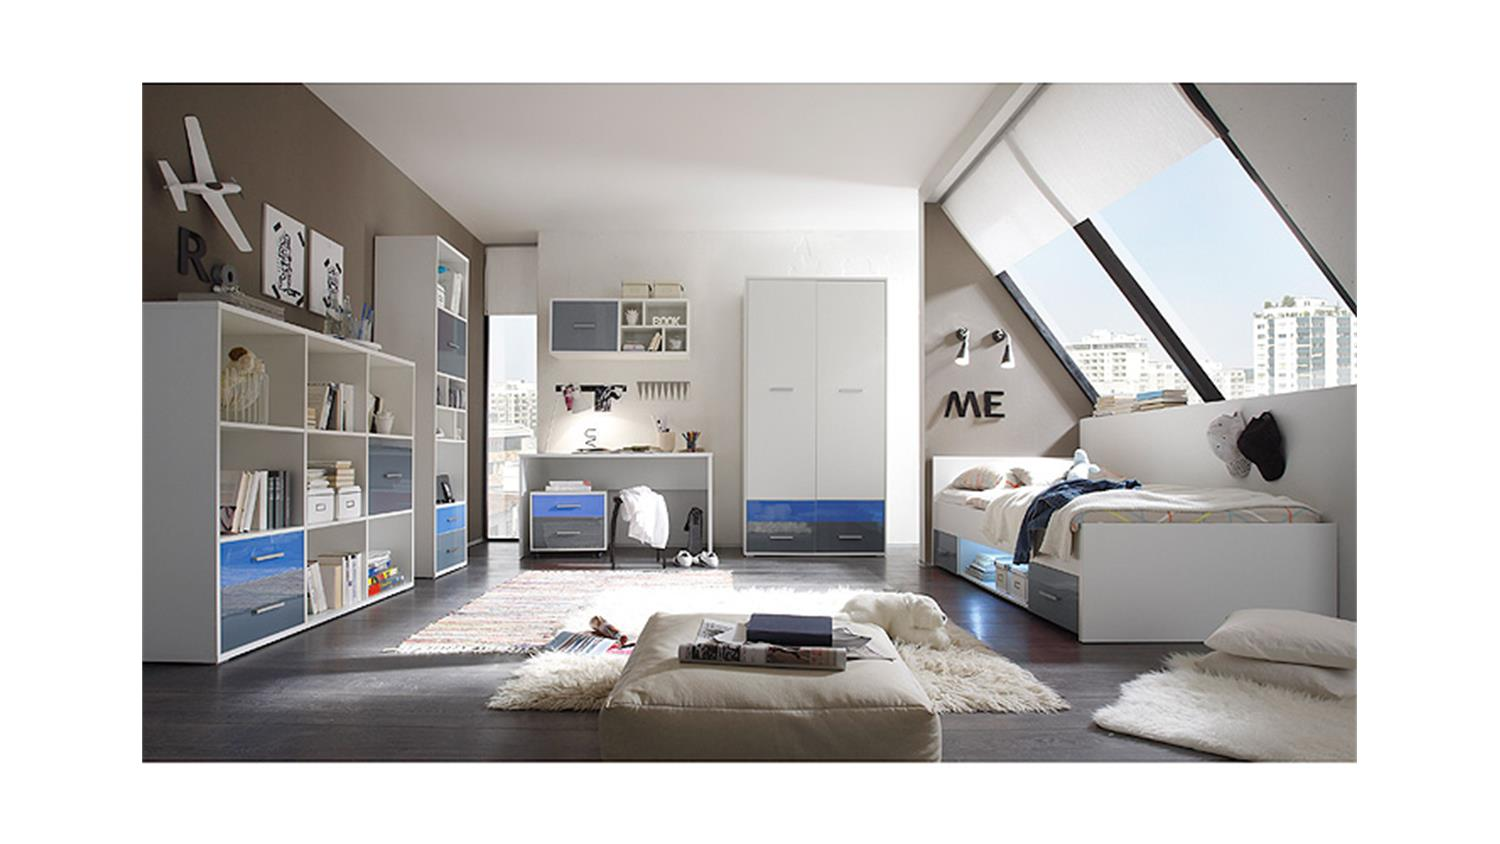 kleiderschrank colori wei und glas blau grau 100 cm. Black Bedroom Furniture Sets. Home Design Ideas